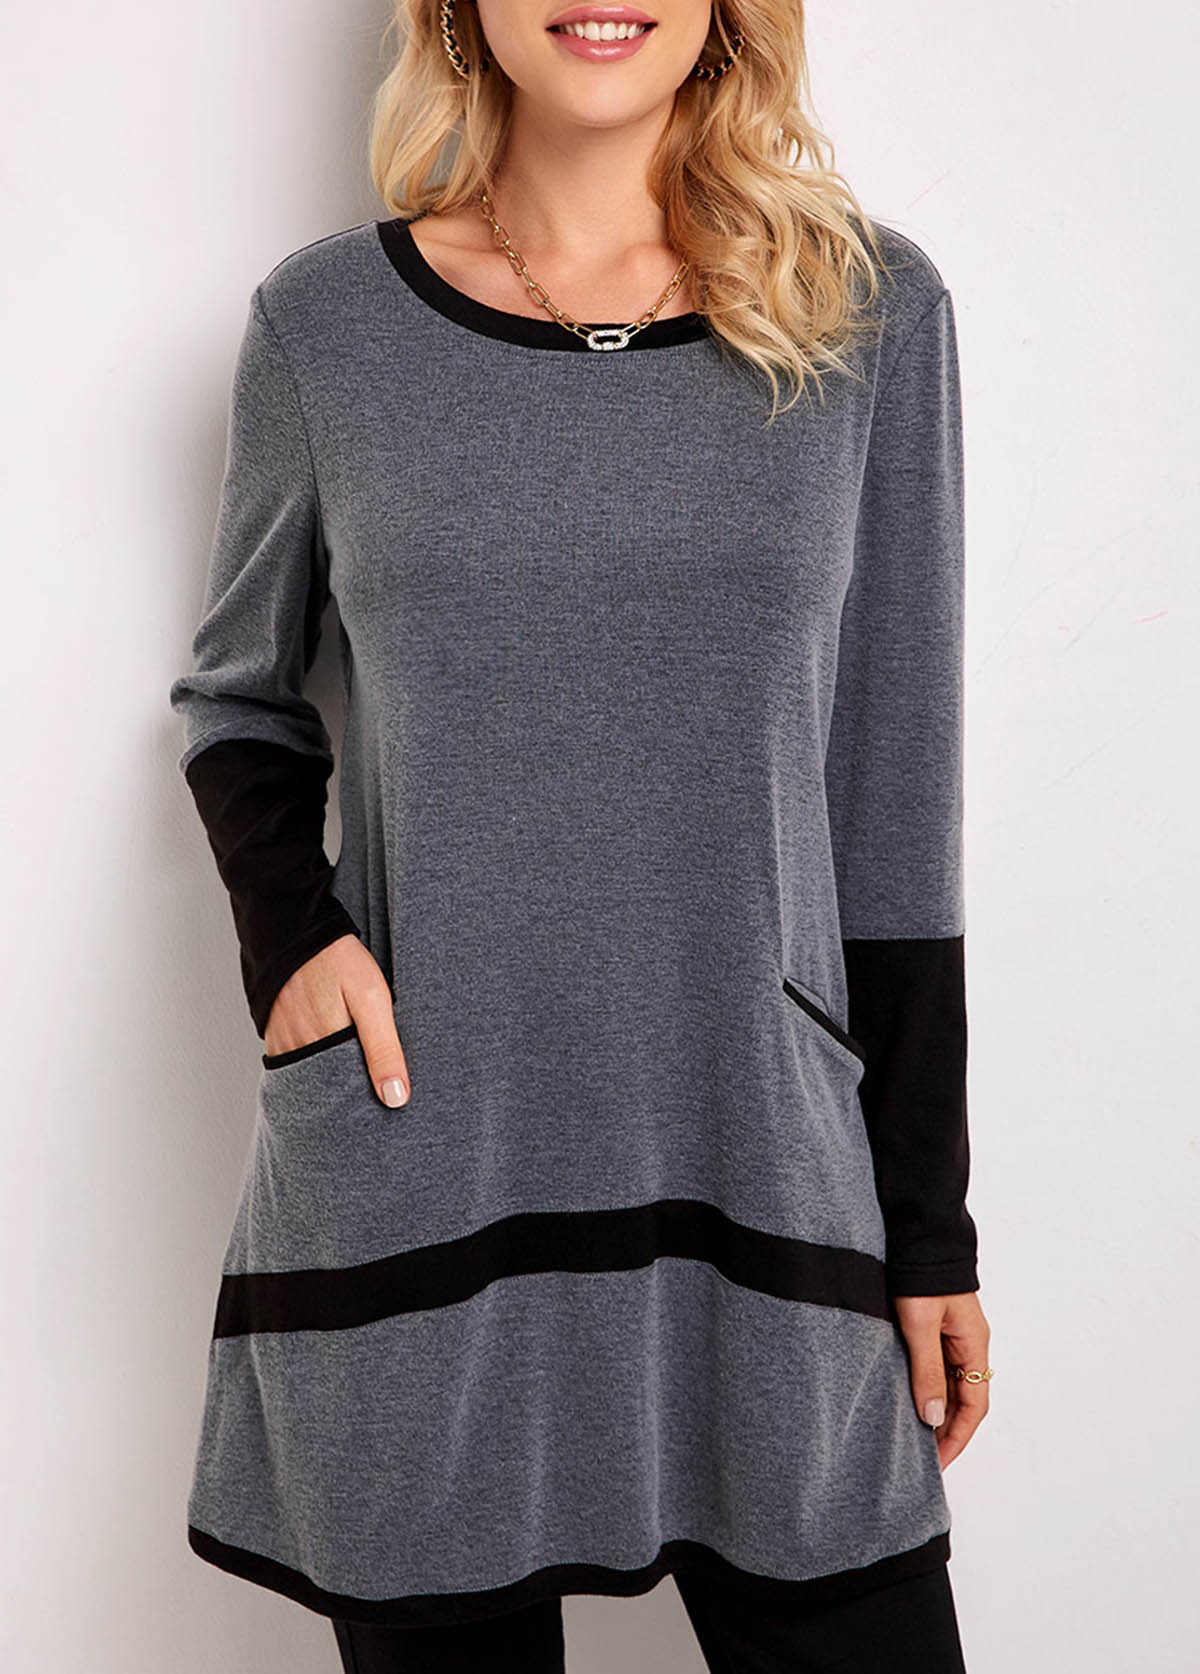 ROTITA Round Neck Long Sleeve Pocket Contrast Tunic Top